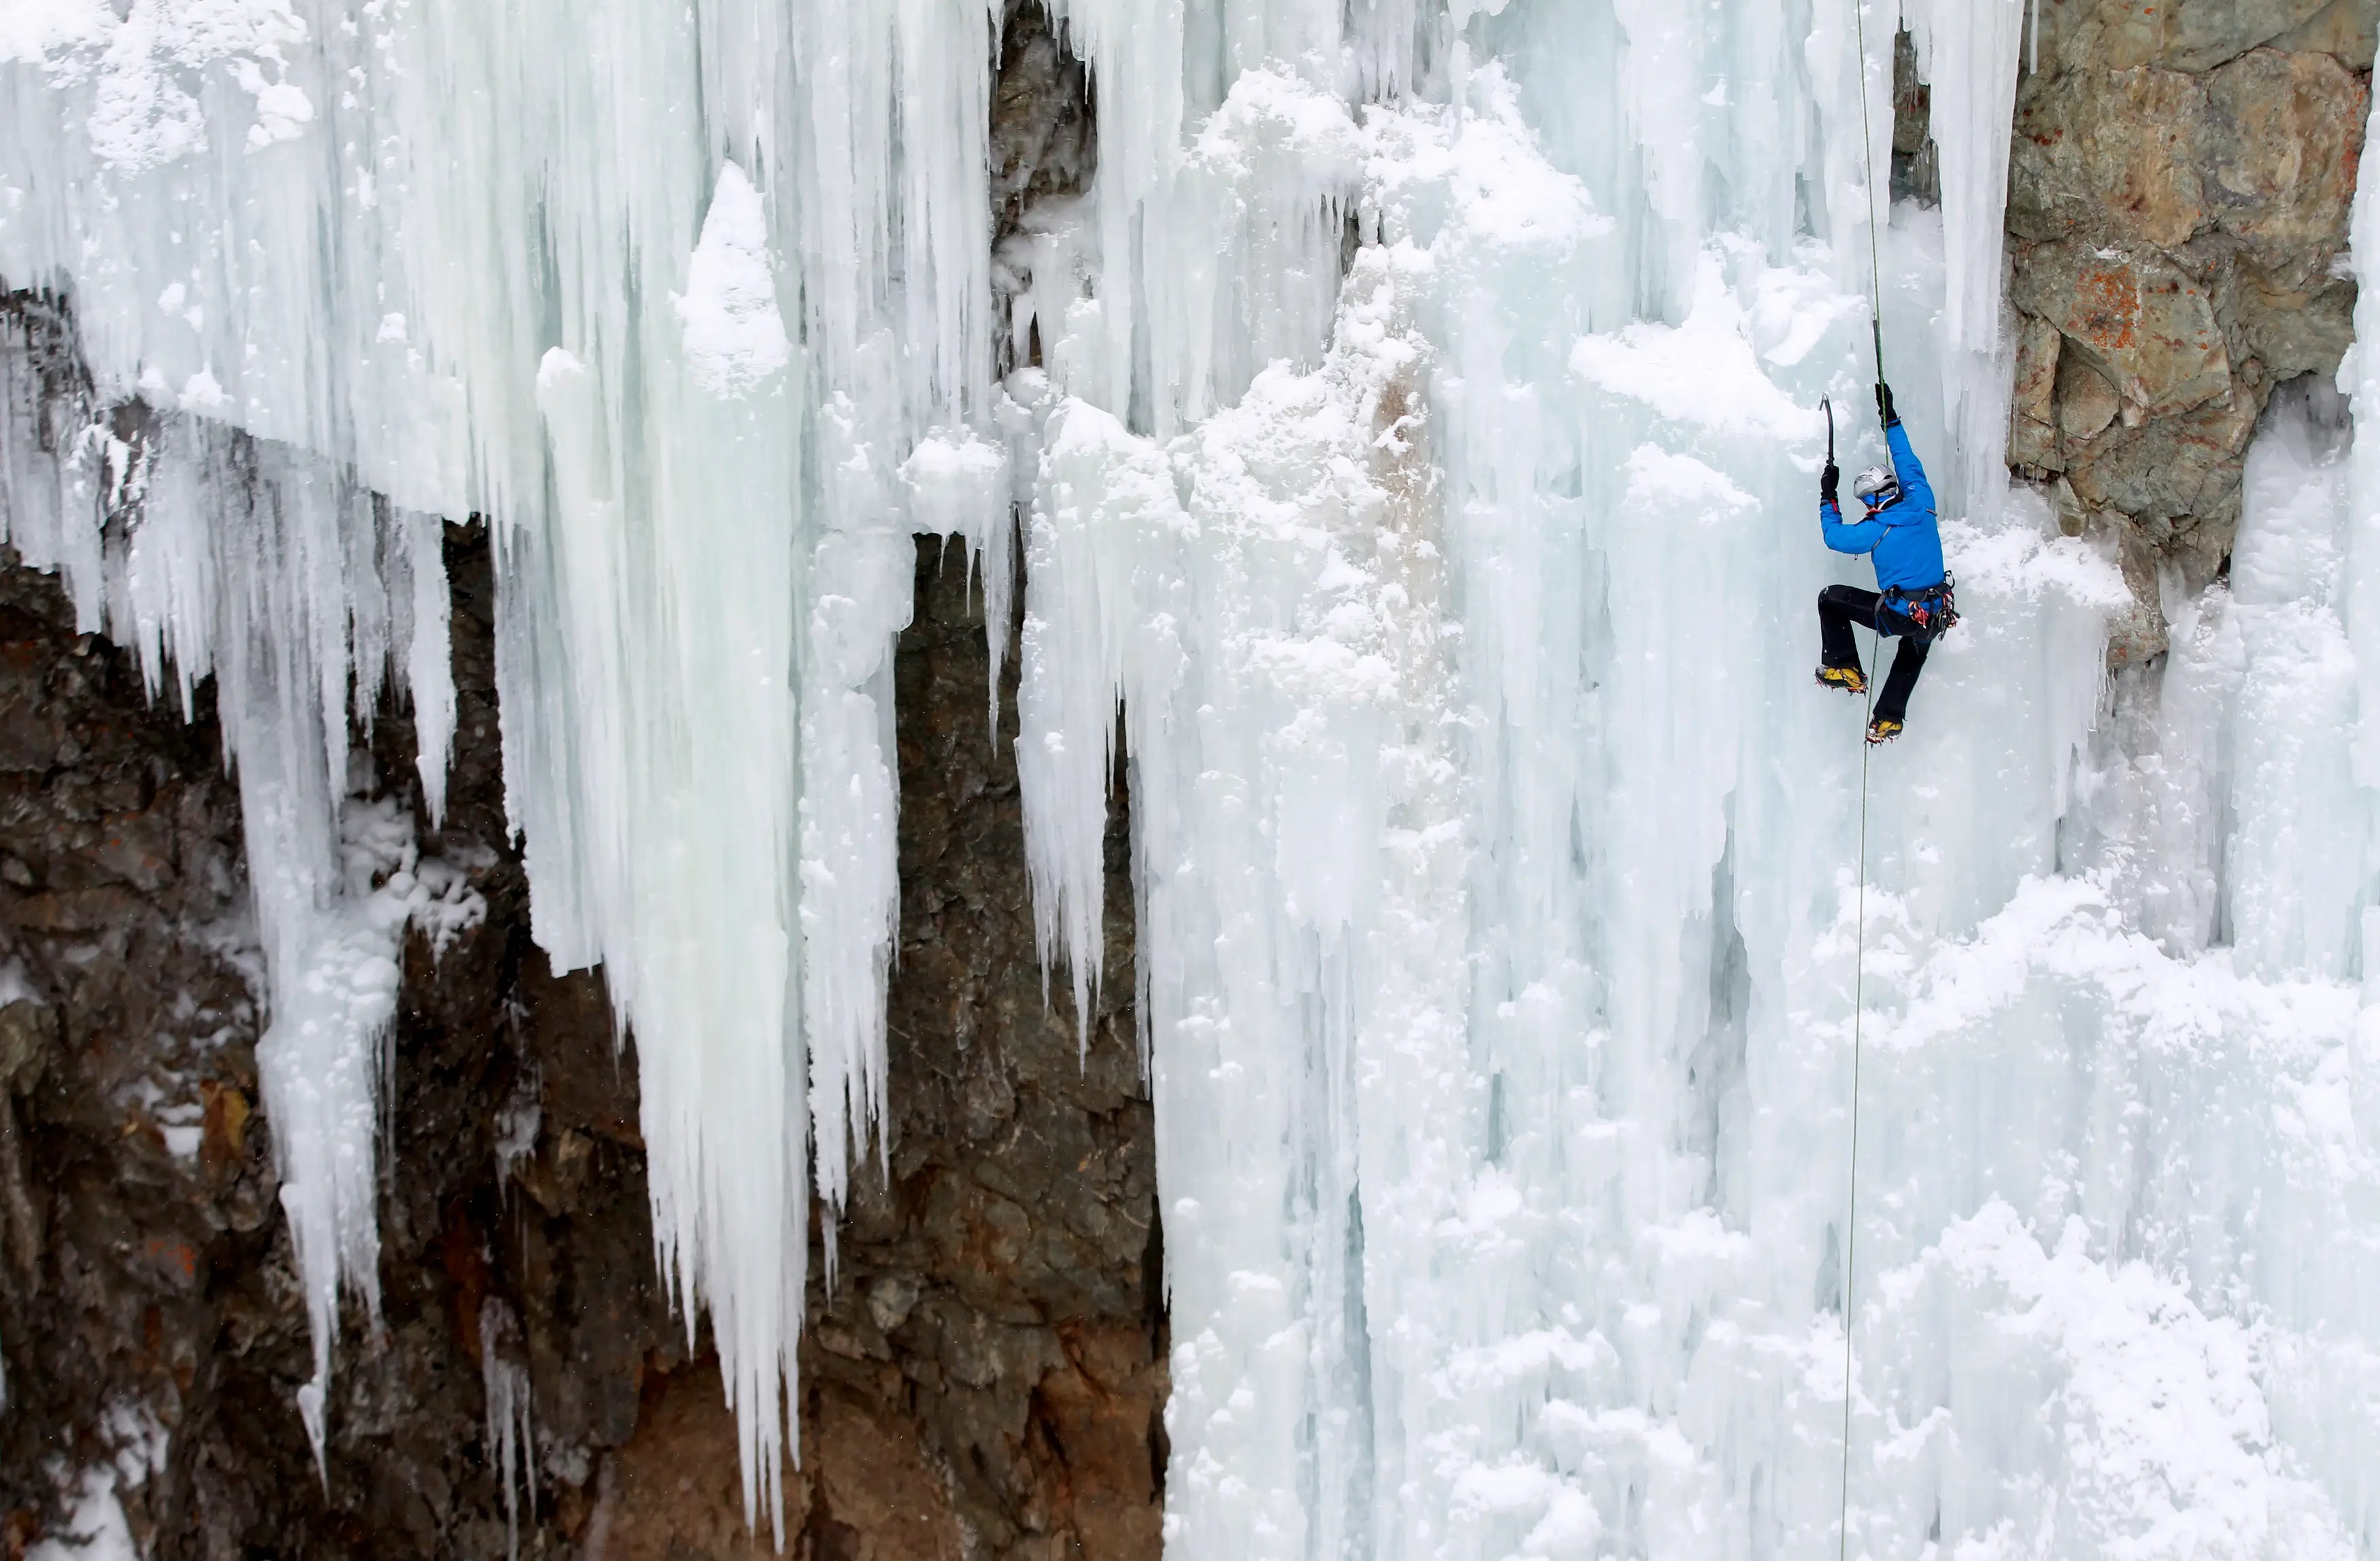 A man climbs up an artificially made wall of ice near the Swiss mountain resort of Pontresina.